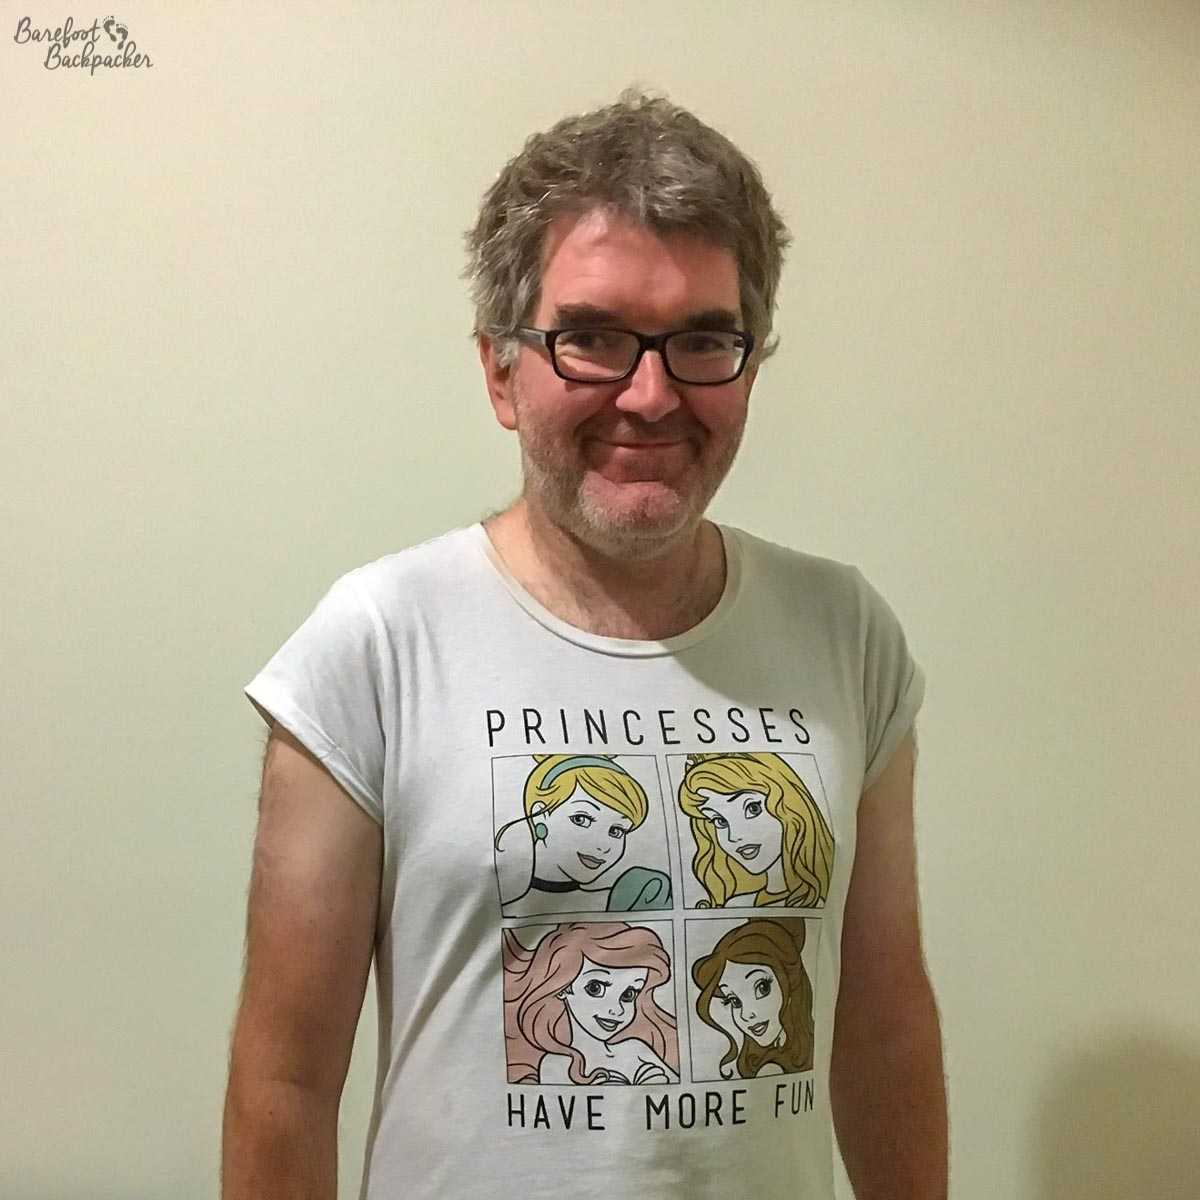 Picture of me, taken by my friend Lisa in Australia, where I am wearing one of her T-shirts proclaiming 'Princesses Have More Fun', with four cartoonish images of princesses' heads on it. The most disturbing thing about it is that the t-shirt fits me. Also, moobs.